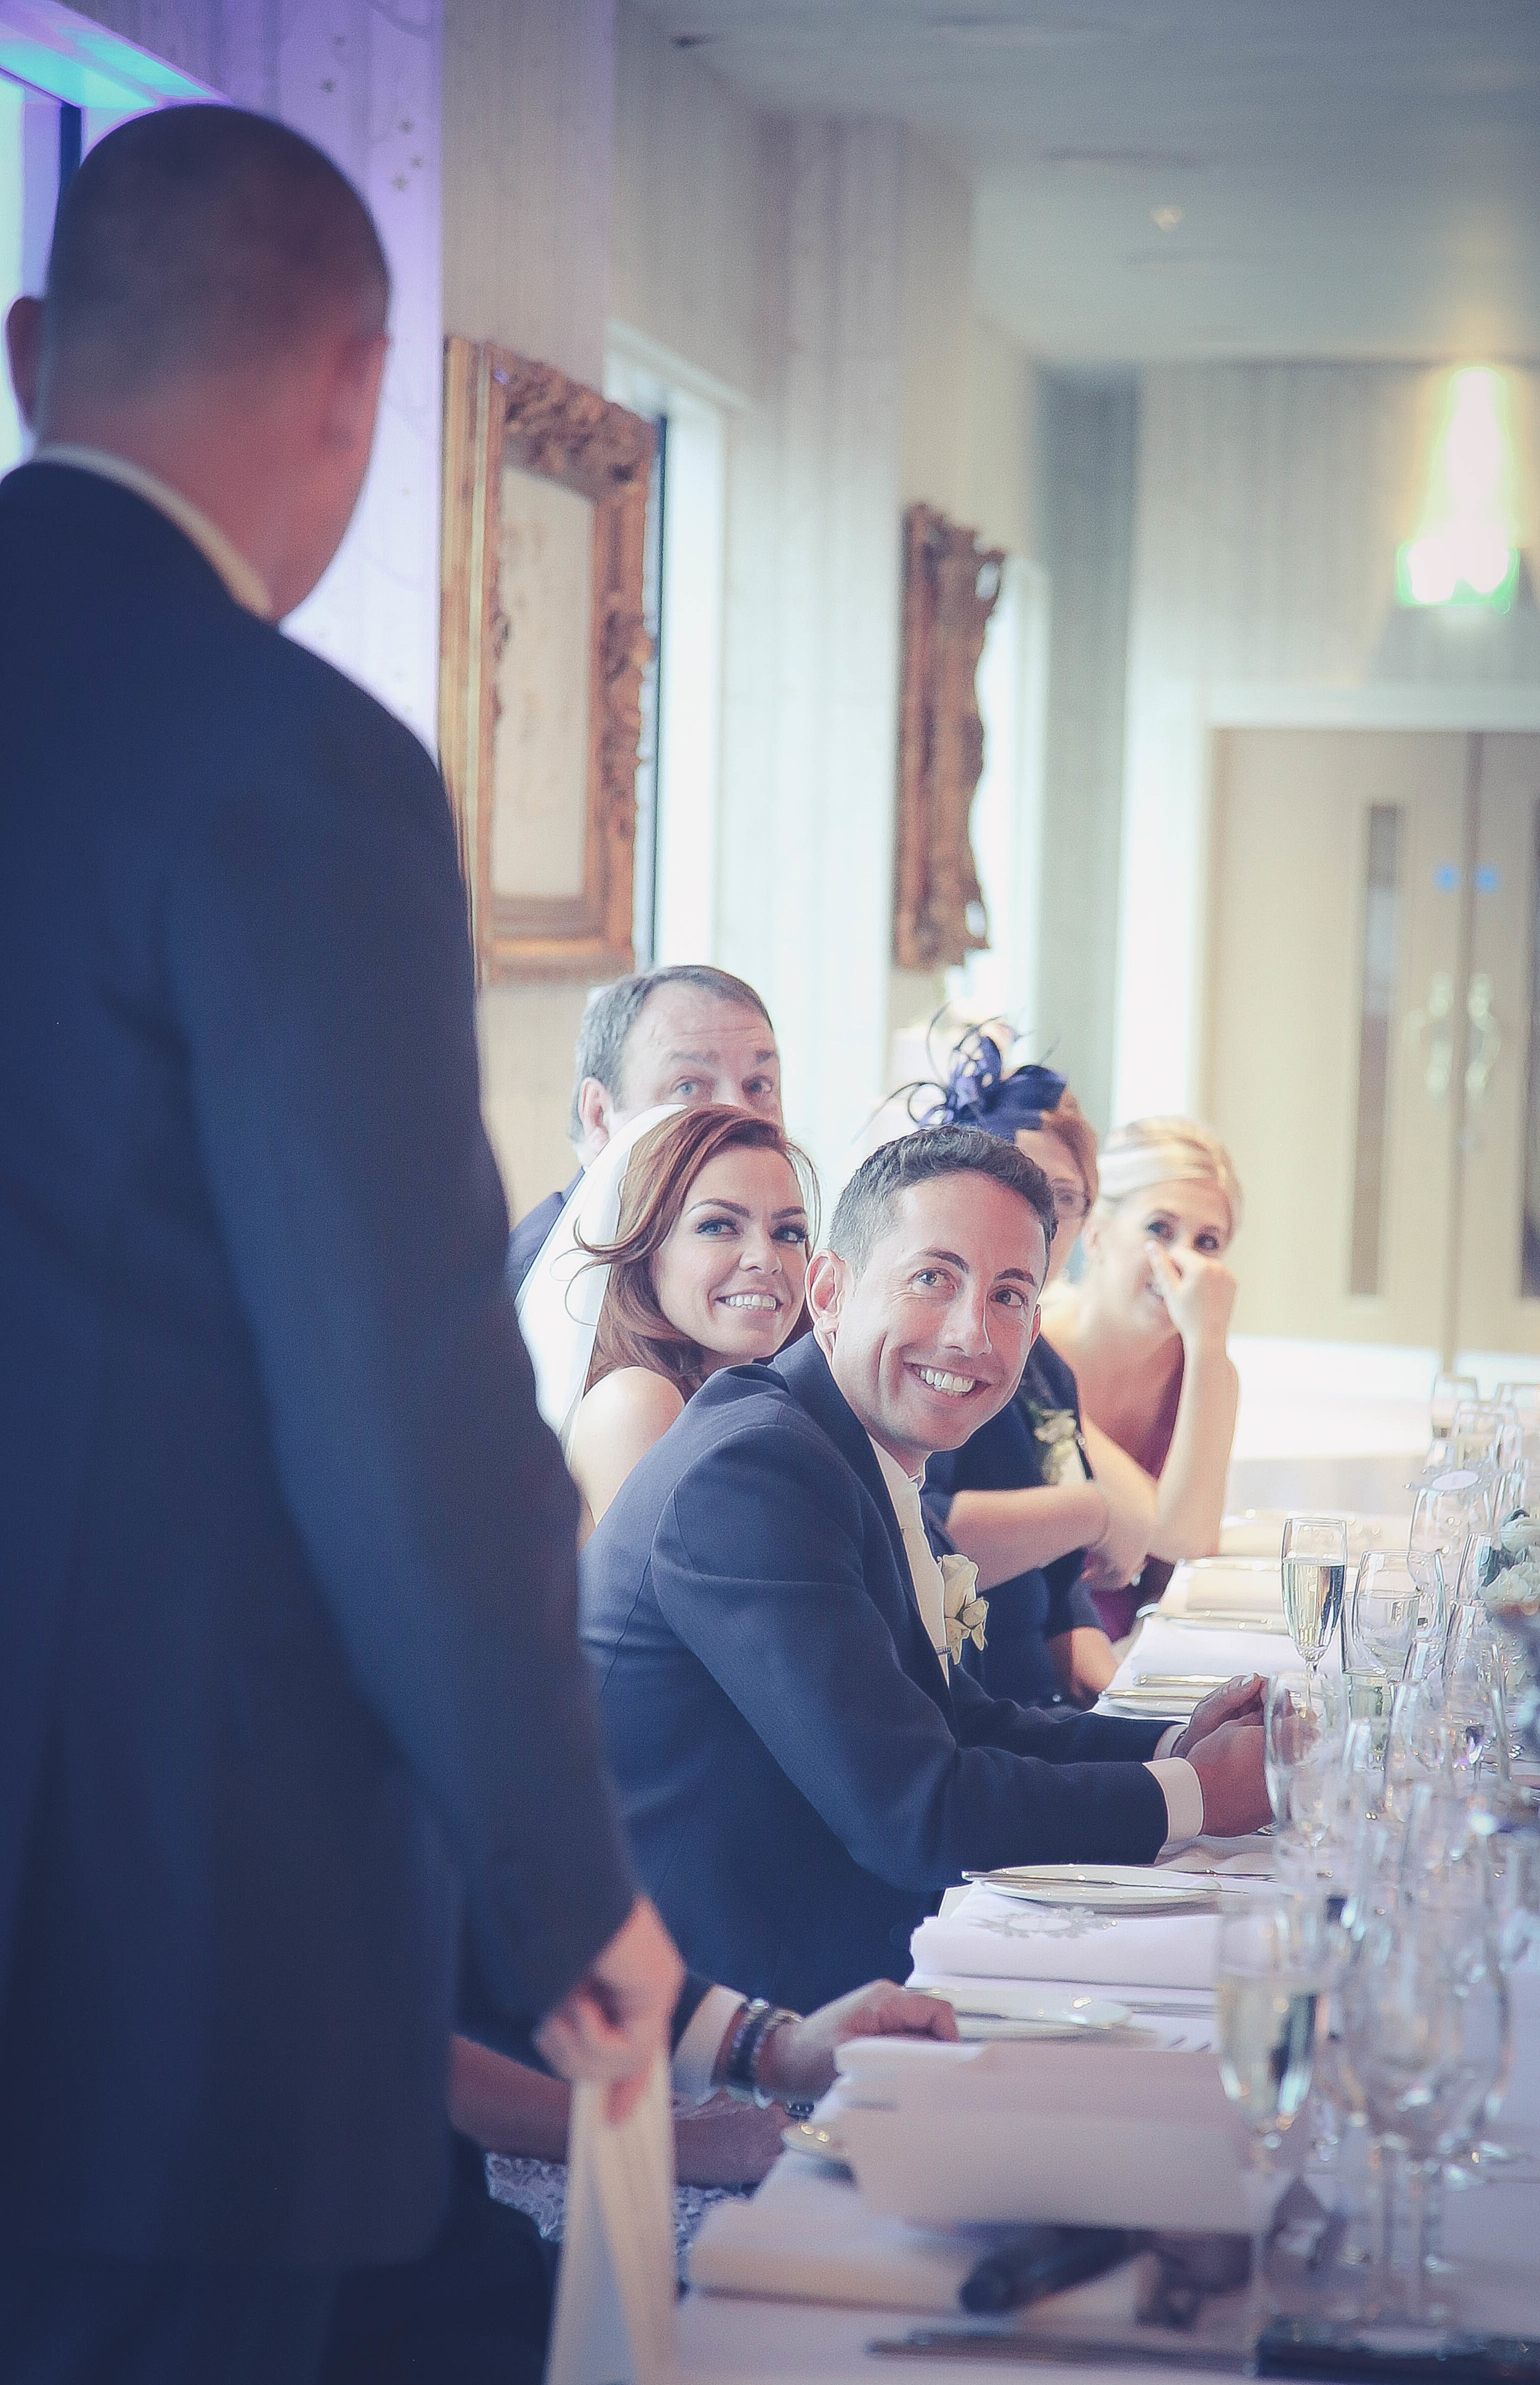 Weddings at the shankly hotel liverpool-135.jpg